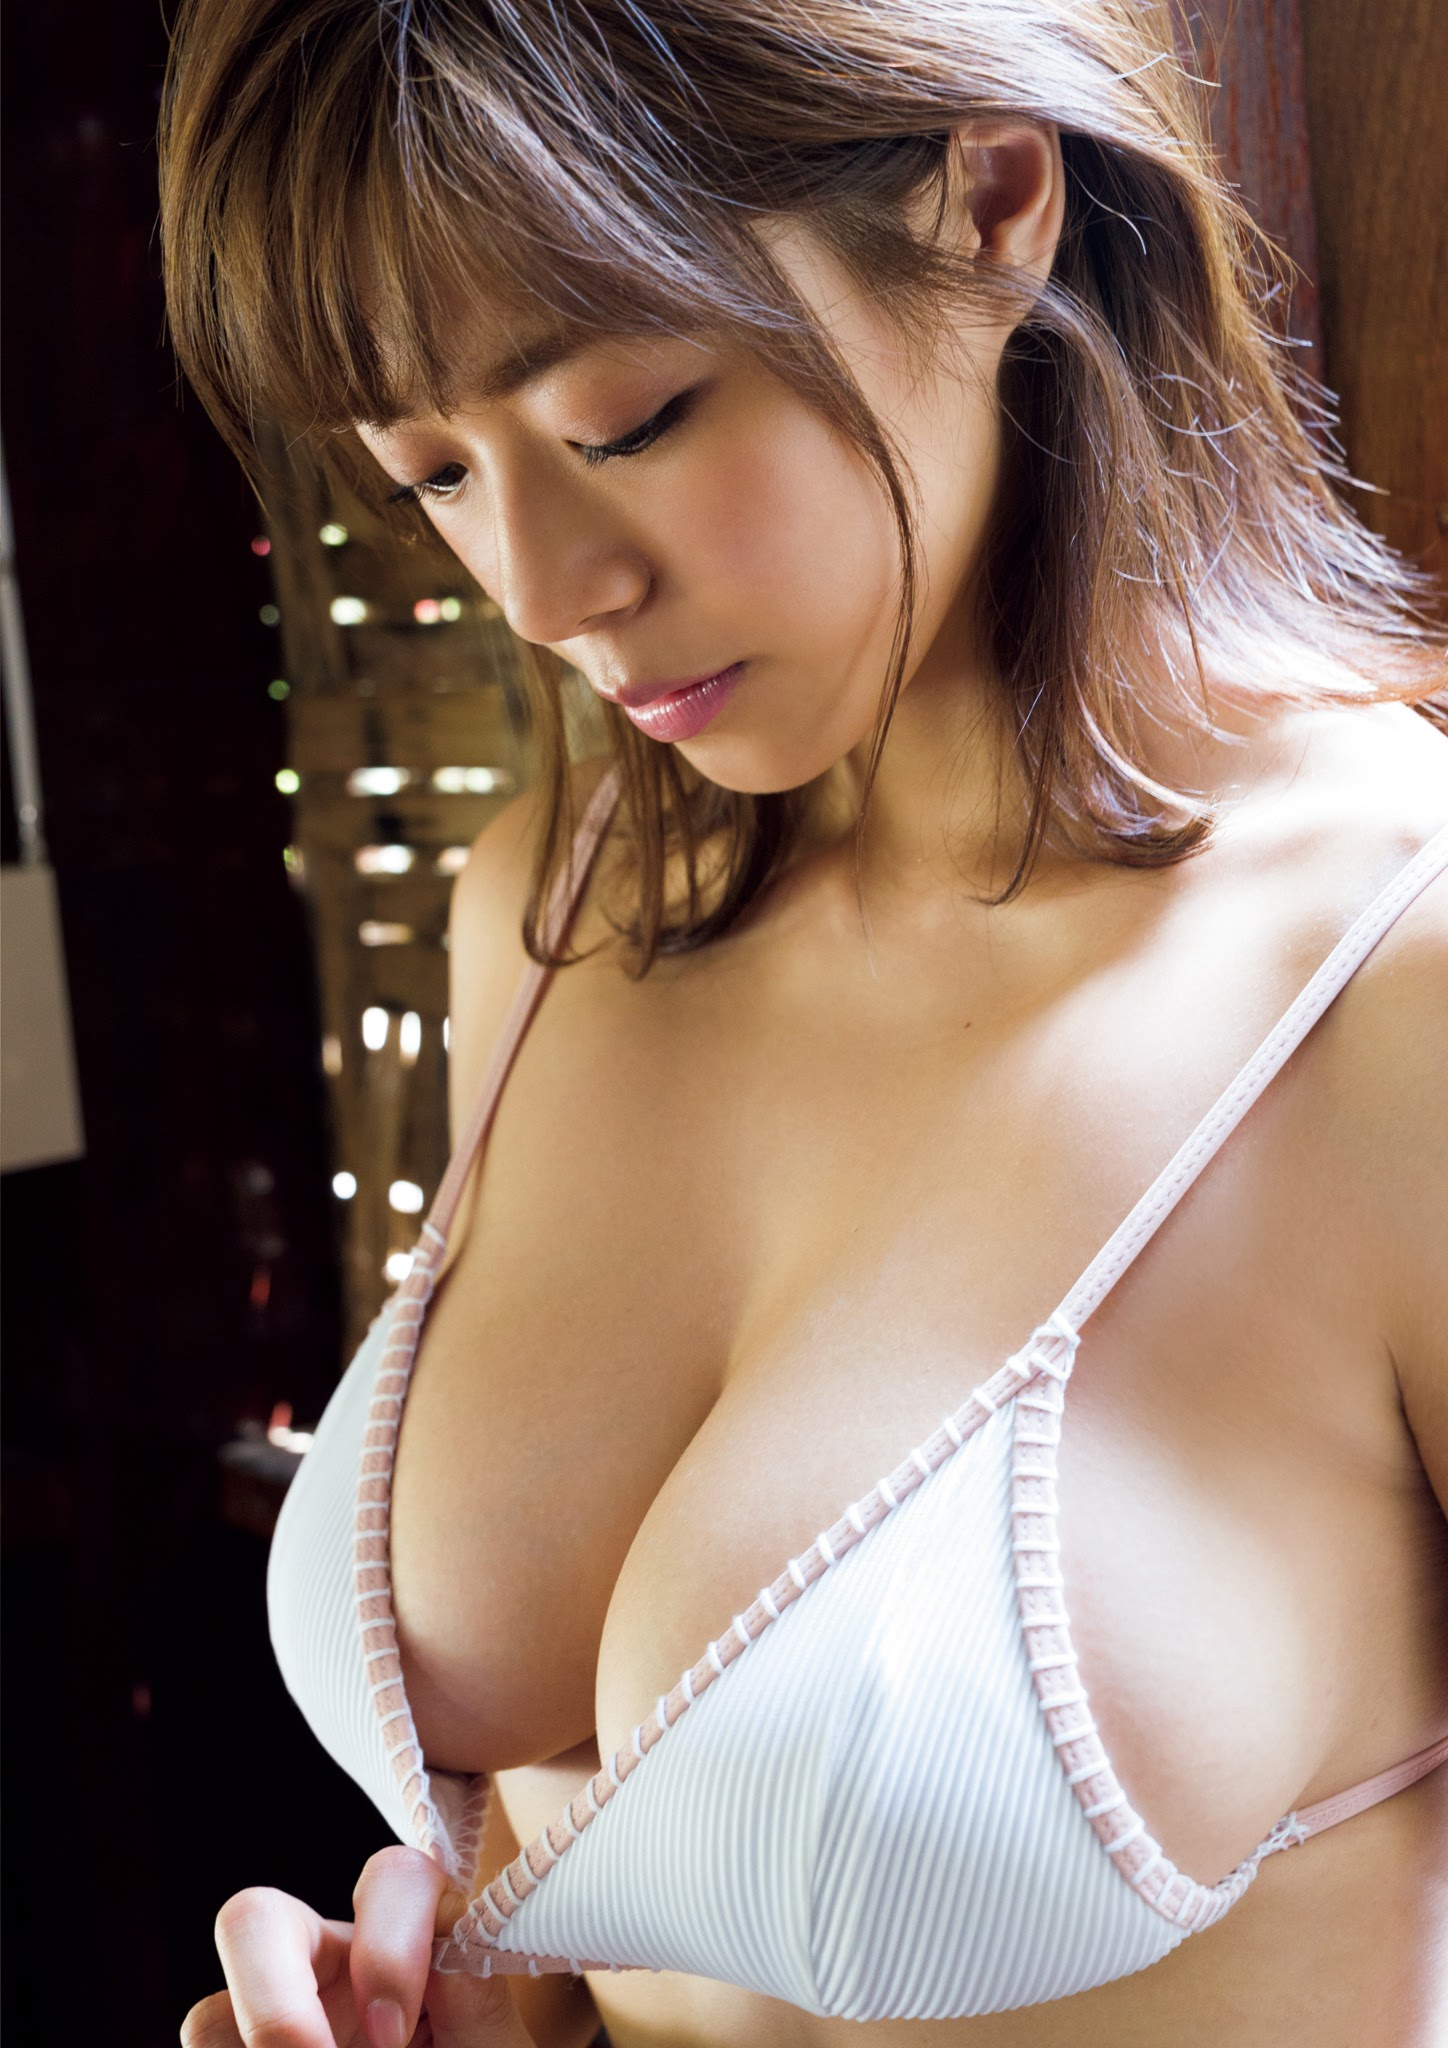 Super body of H cup Minami Wachi 2020 that exposes body and mind in tropical Thailand052